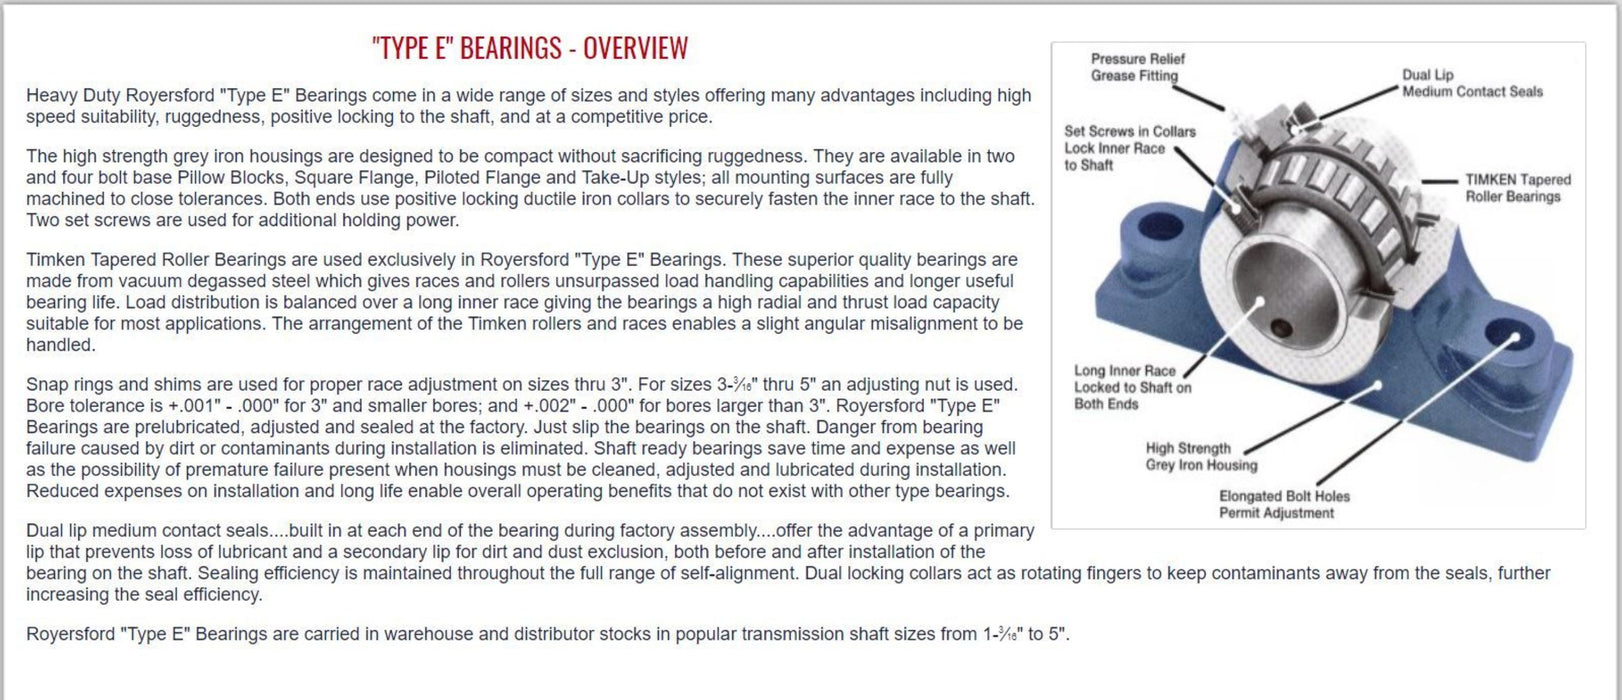 20-02-0308, ROYERSFORD TYPE E Pillow Block Bearing, 3-1/2 with Timken Tapered Roller Bearings